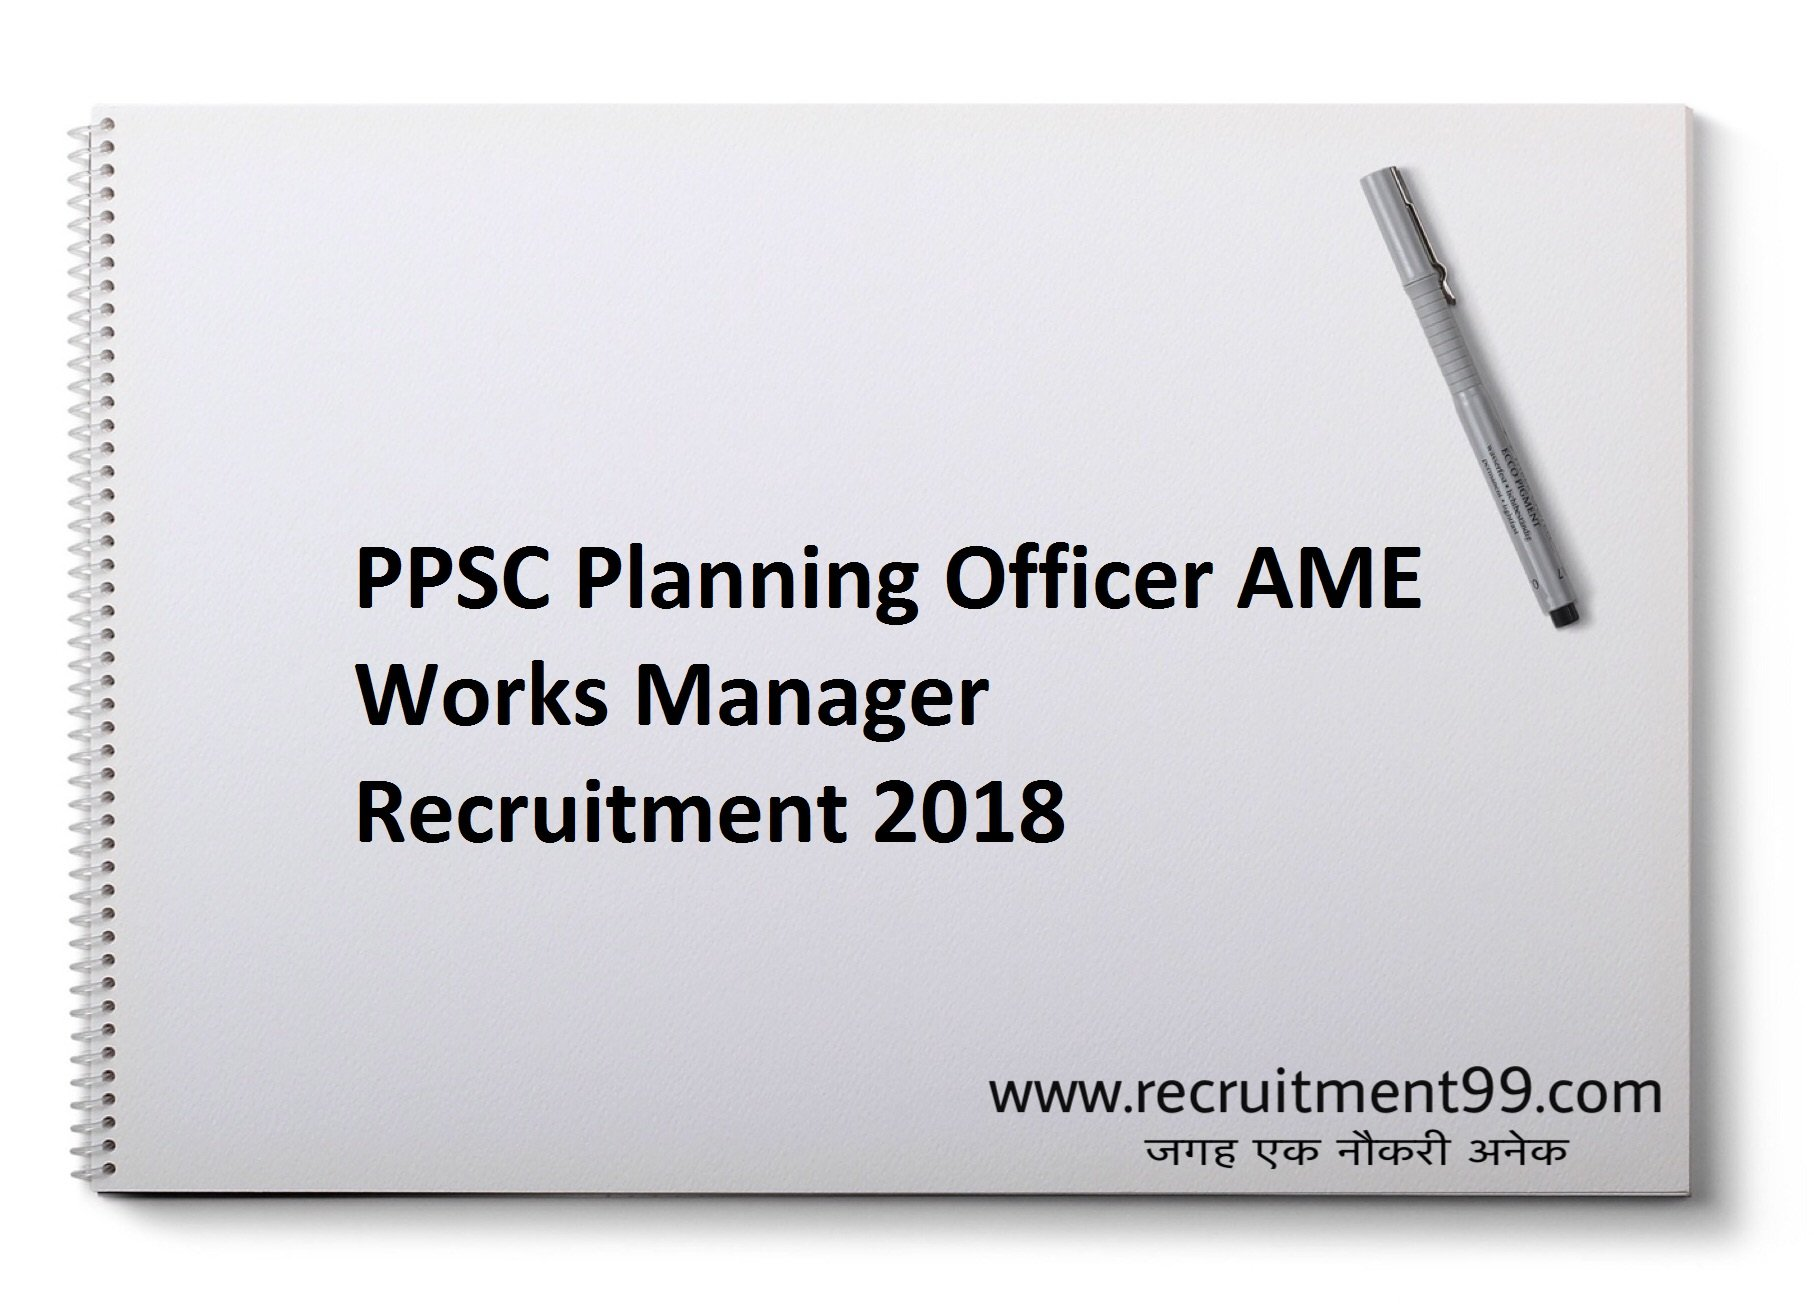 PPSC Planning Officer AME Works Manager Recruitment Admit Card Result 2018